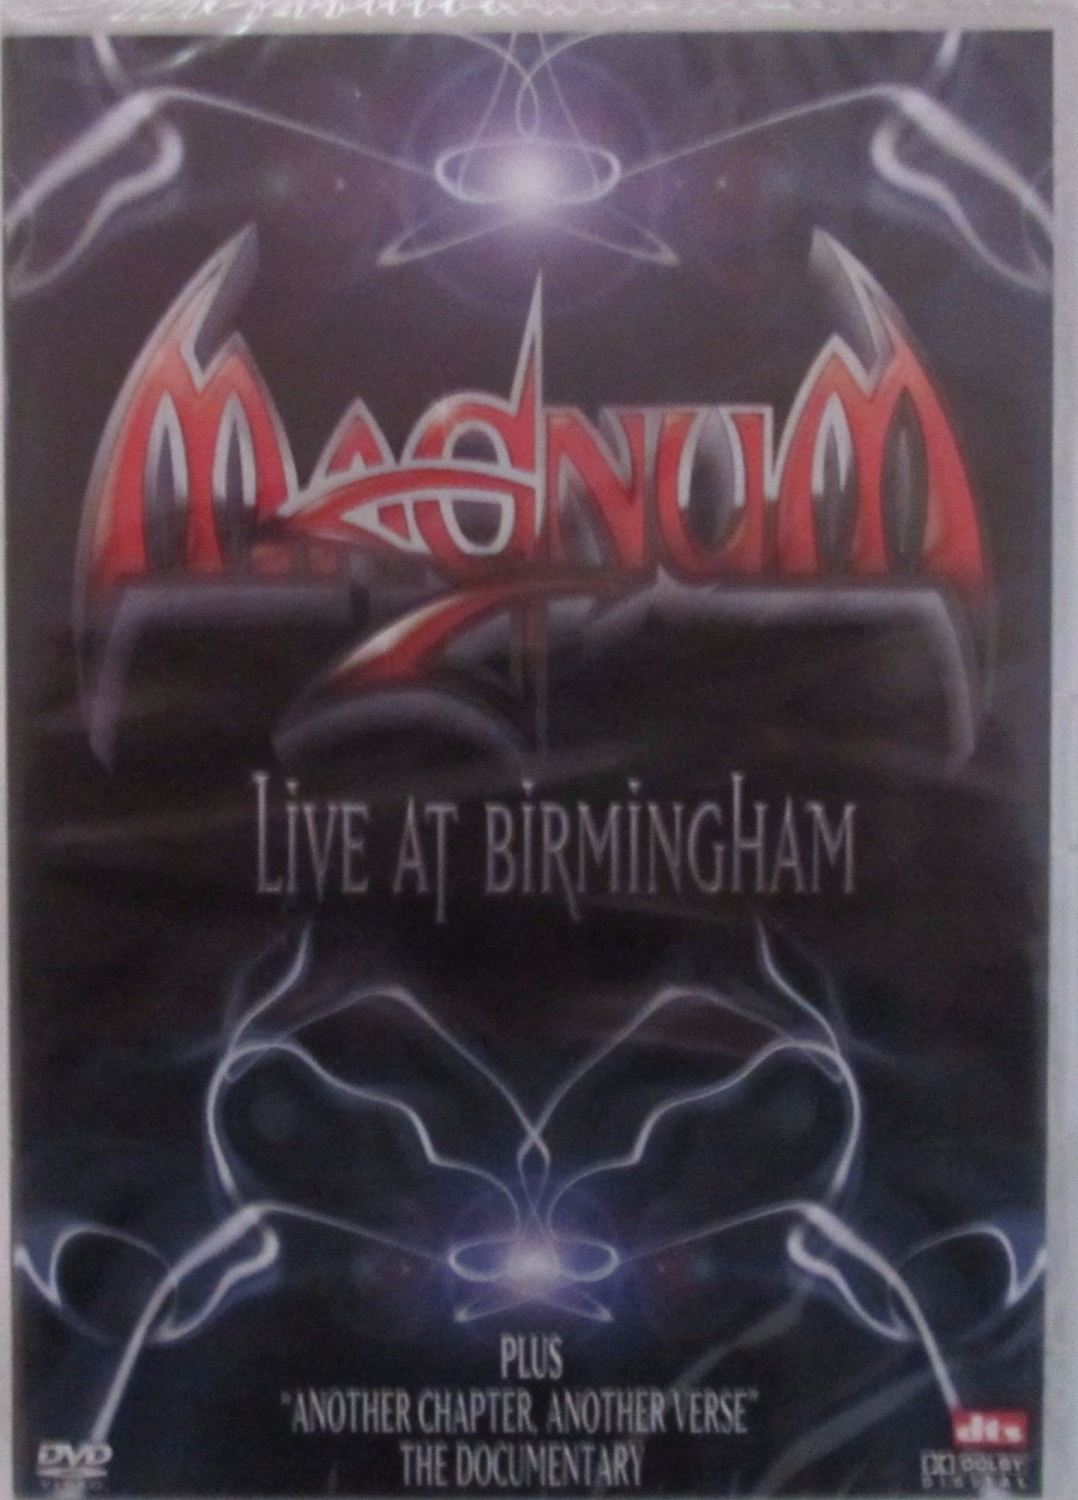 Magnum  - Live At Birmingham  Plus Another Chapter Another Verse -The Docum